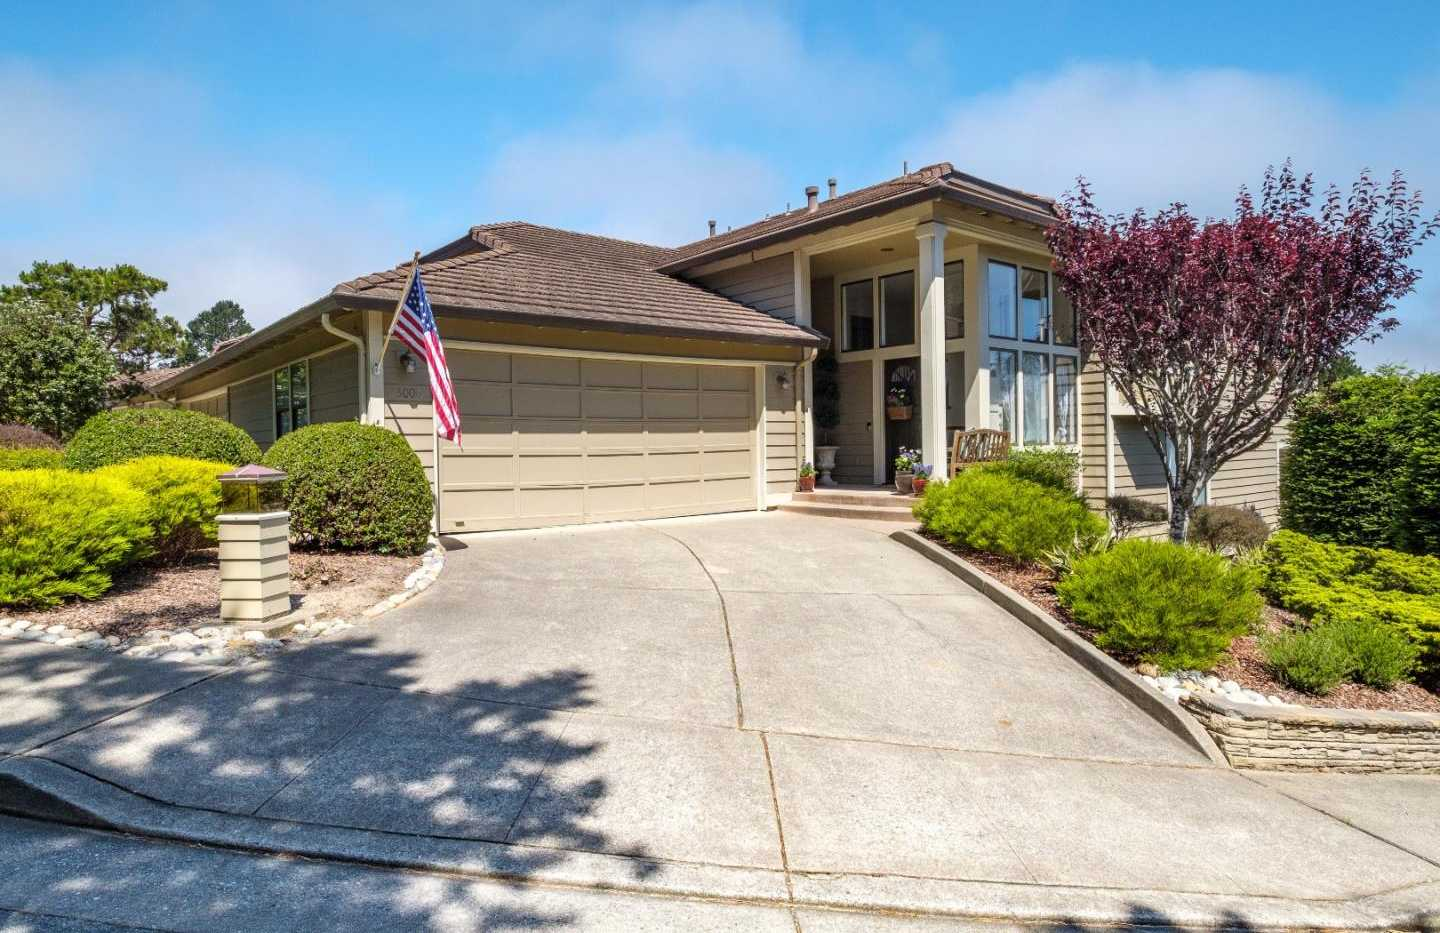 $844,000 - 3Br/3Ba -  for Sale in Pacific Grove